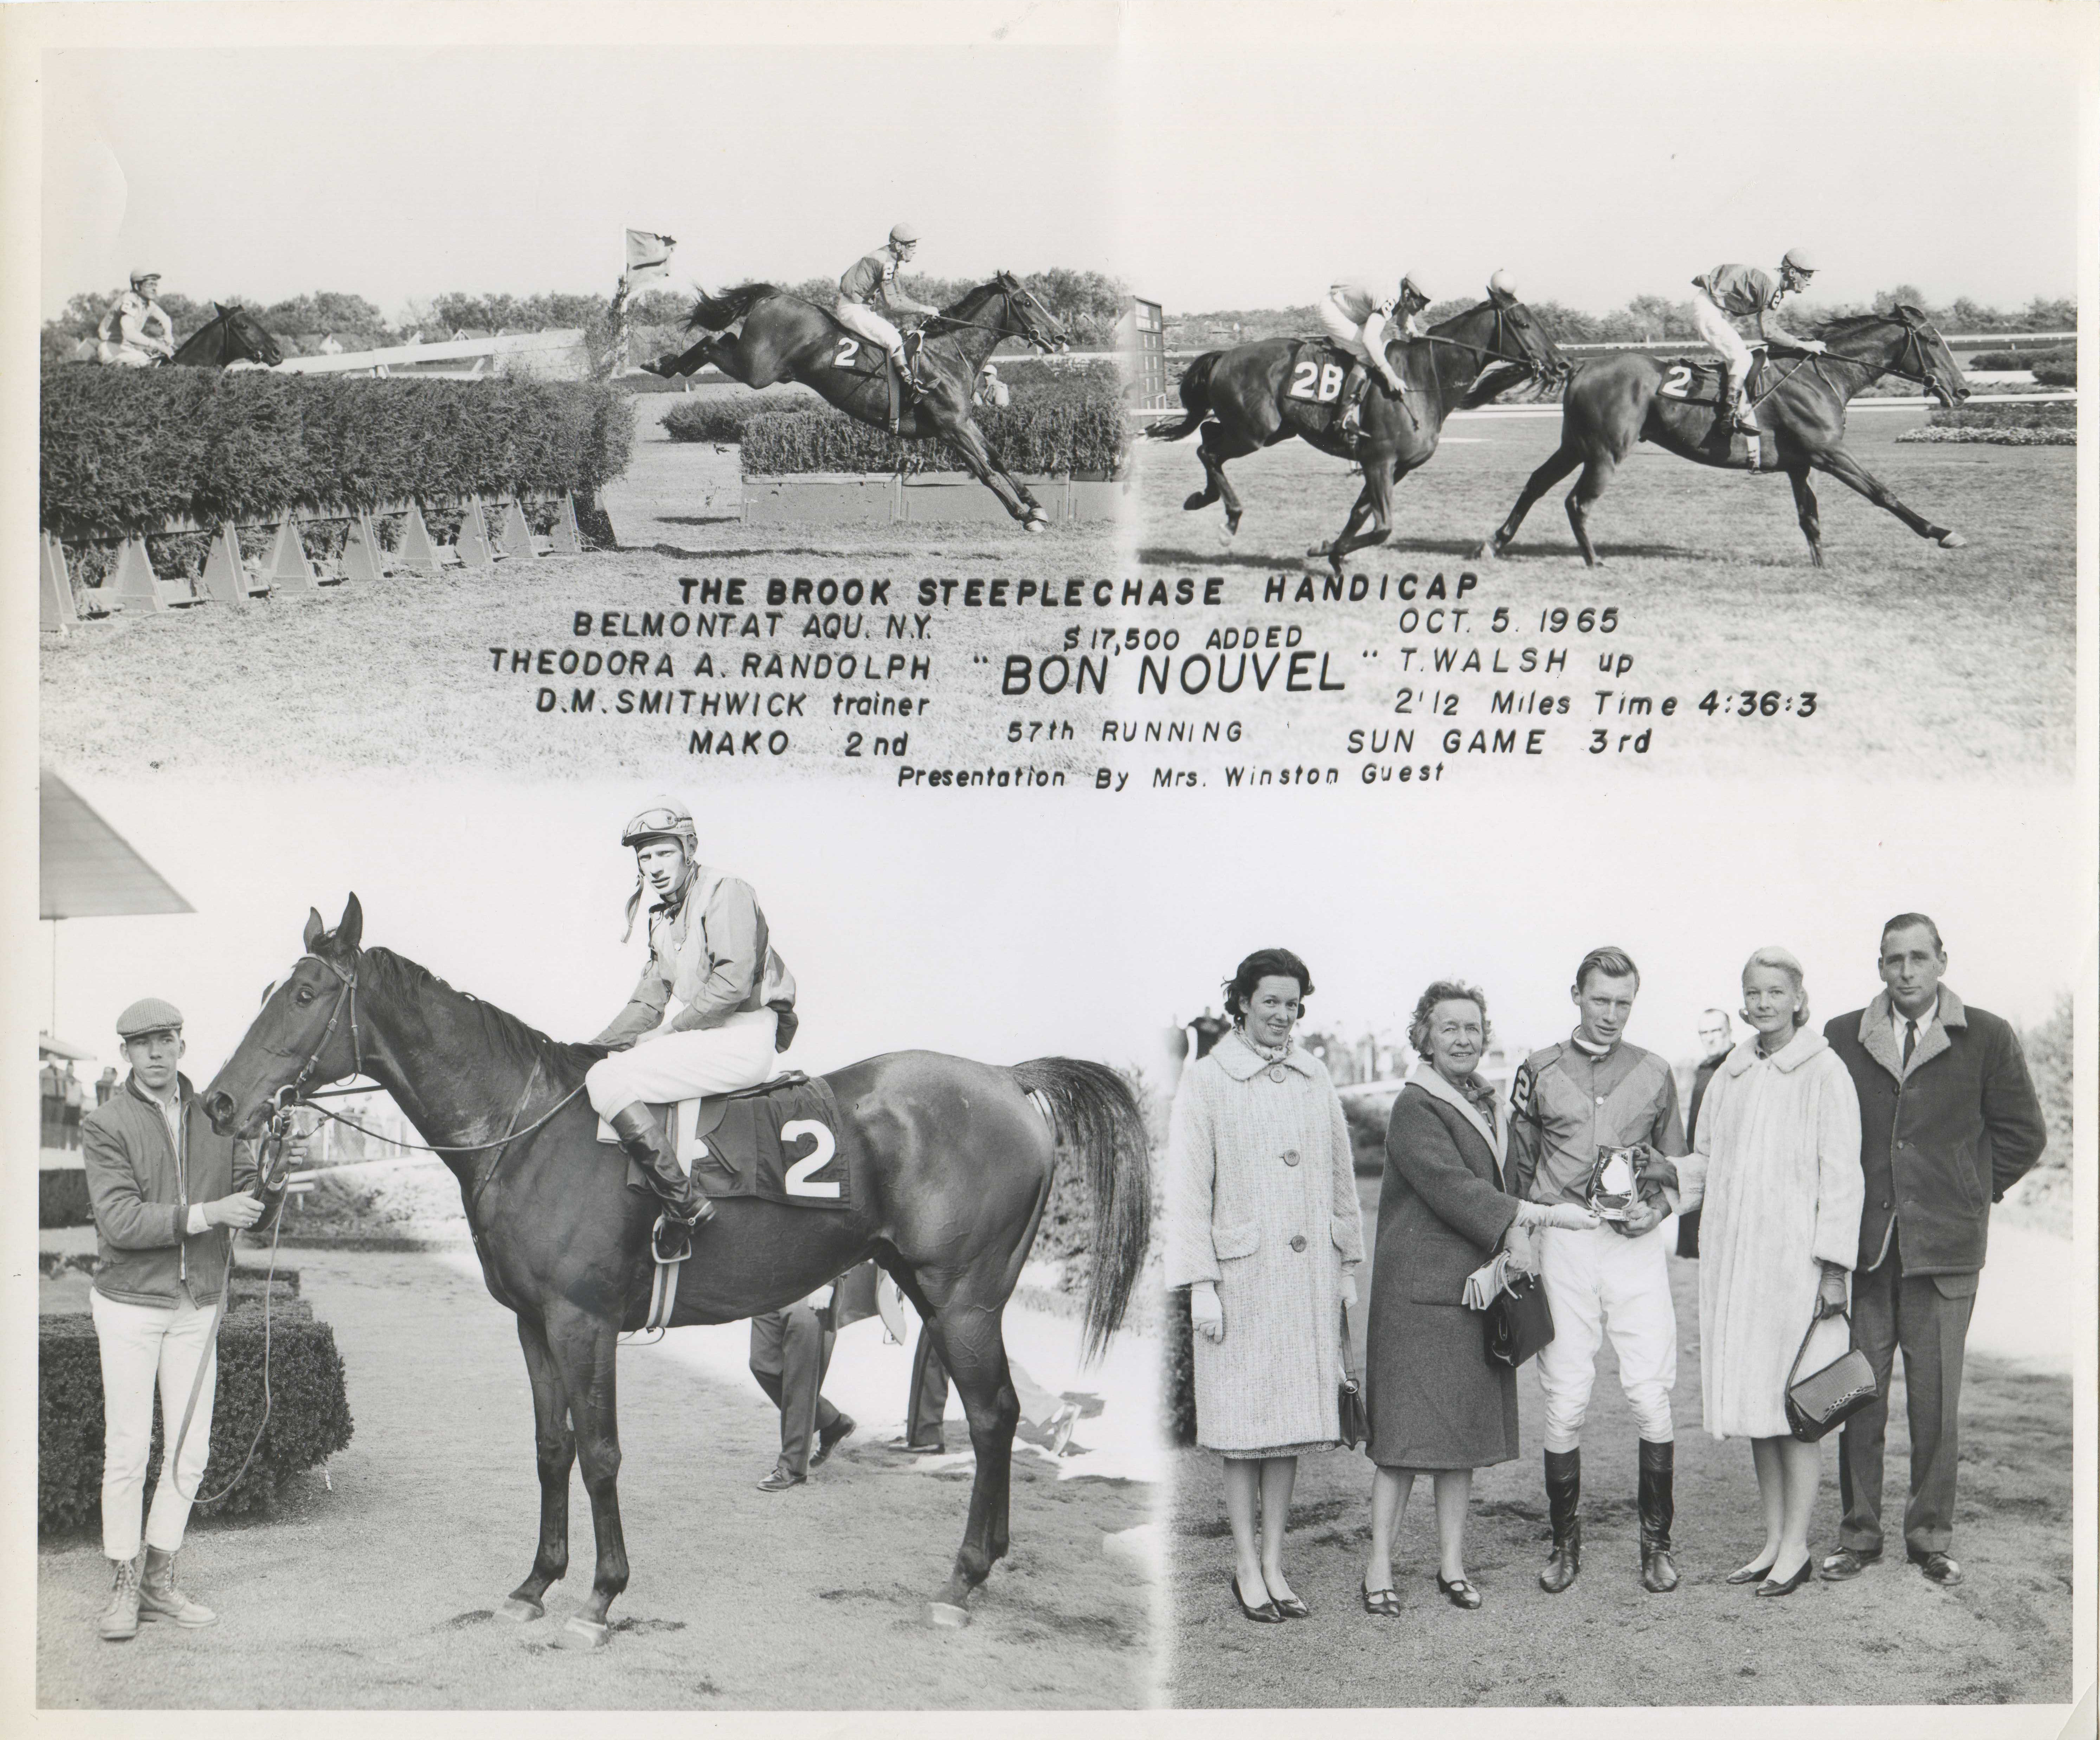 Win composite photograph for the 1965 Brook Steeplechase Handicap at the Belmont at Aqueduct meet (NYRA/Museum Collection)